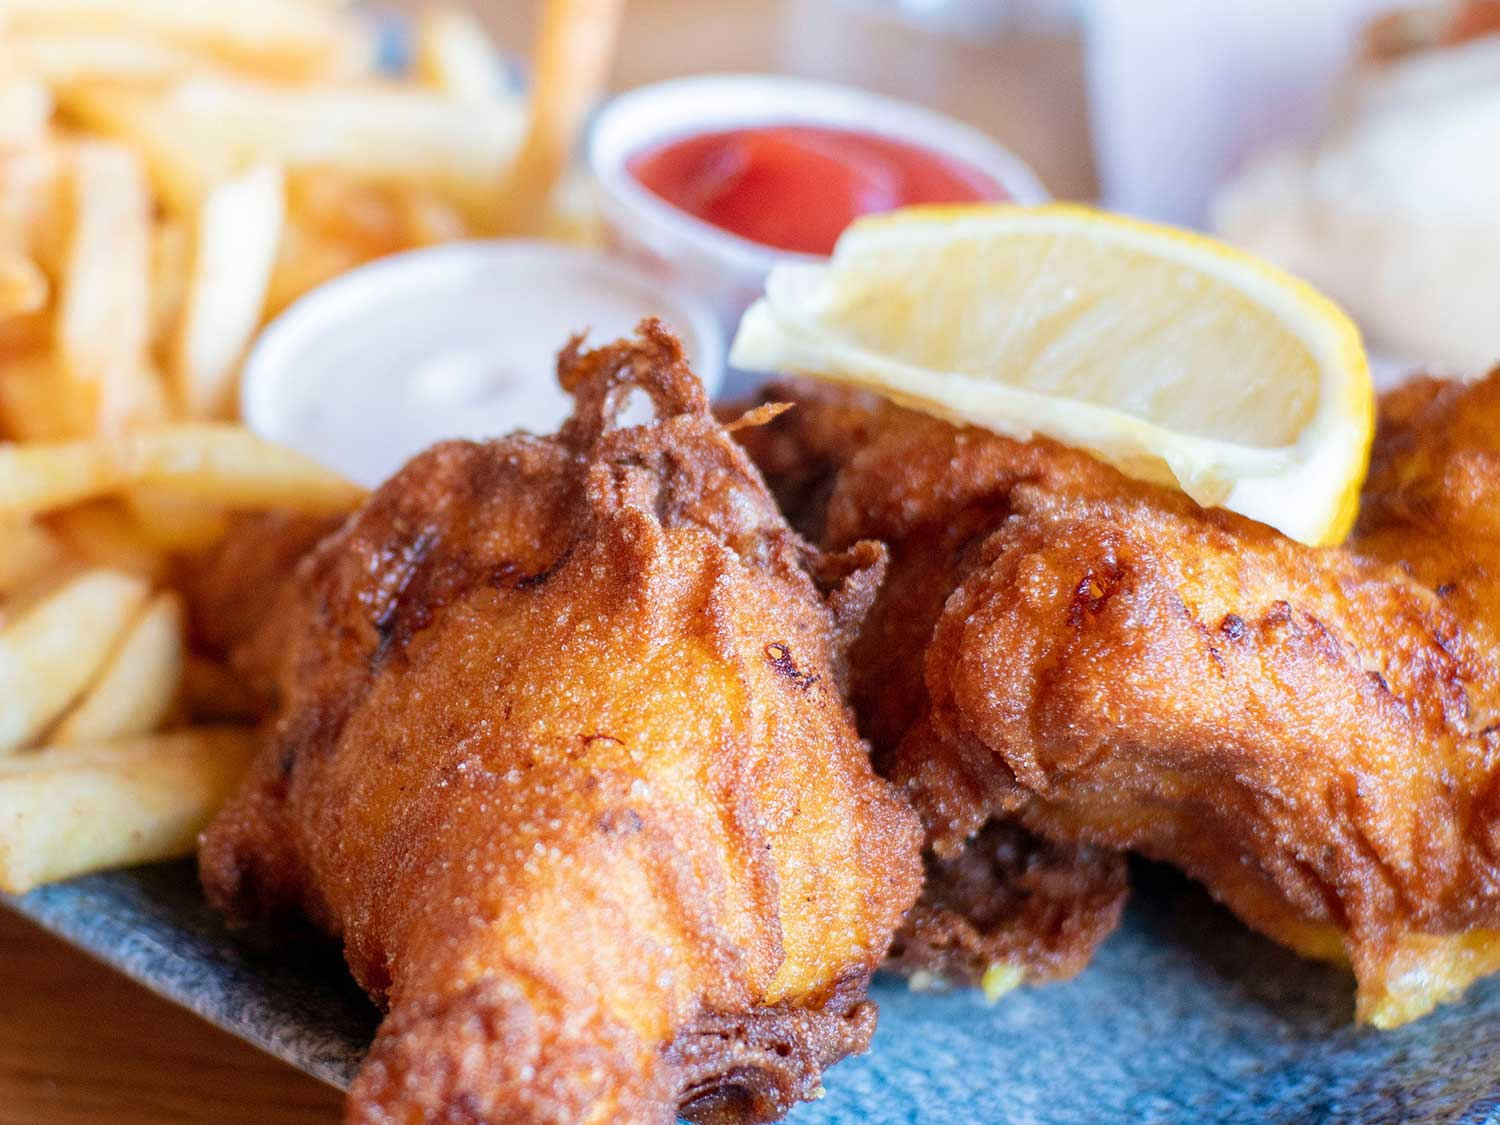 Fried fish and fries.